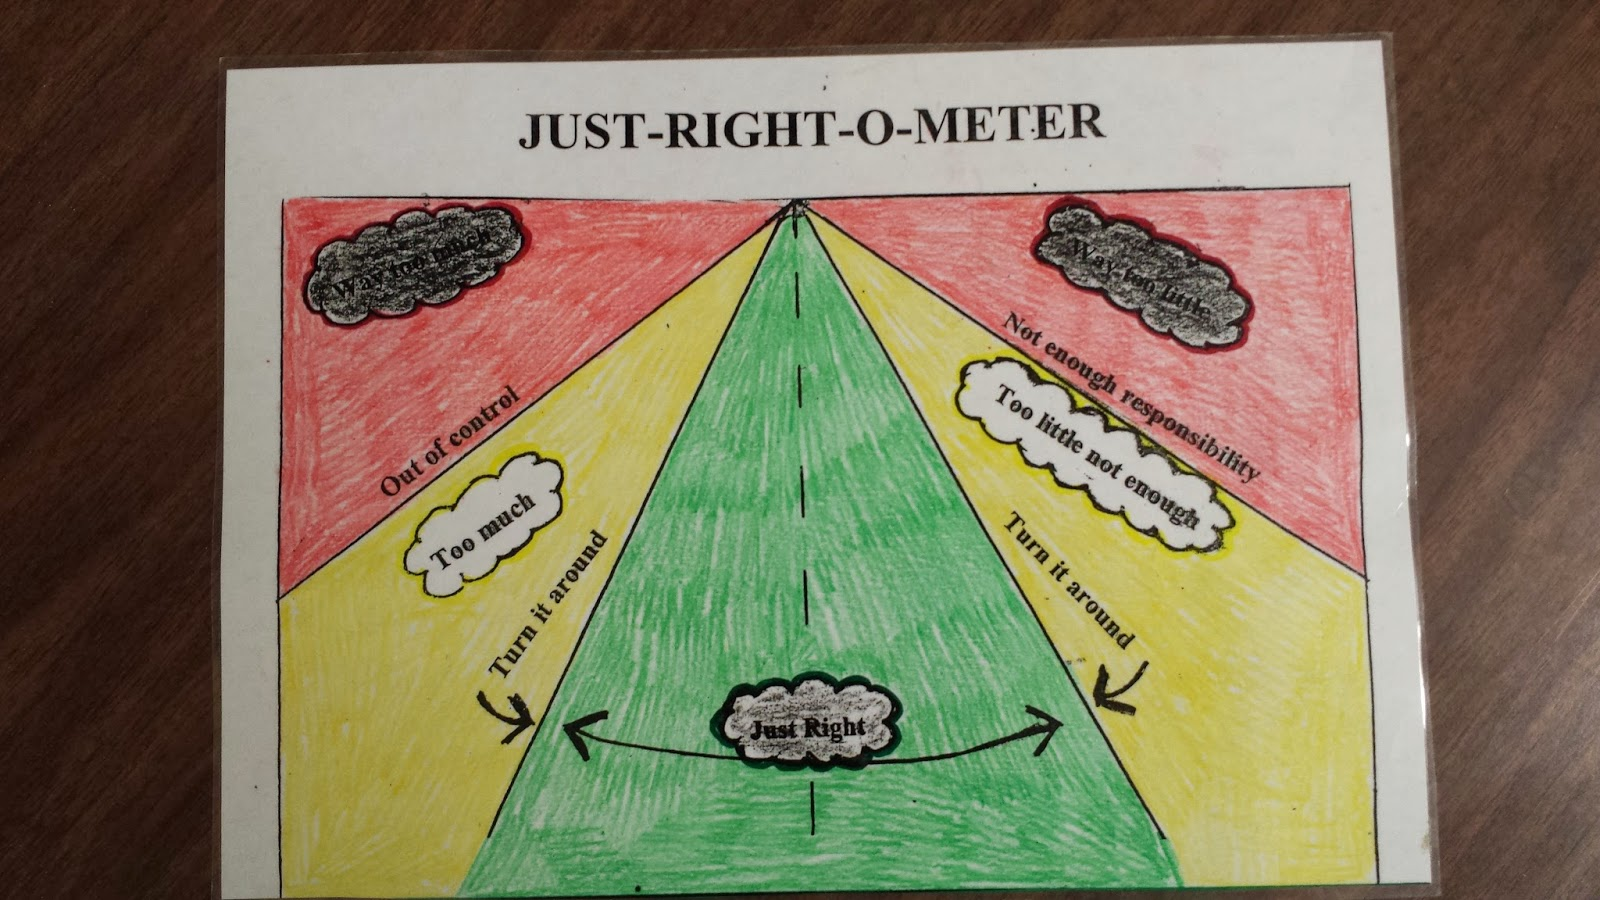 Photo of the just right o meter.